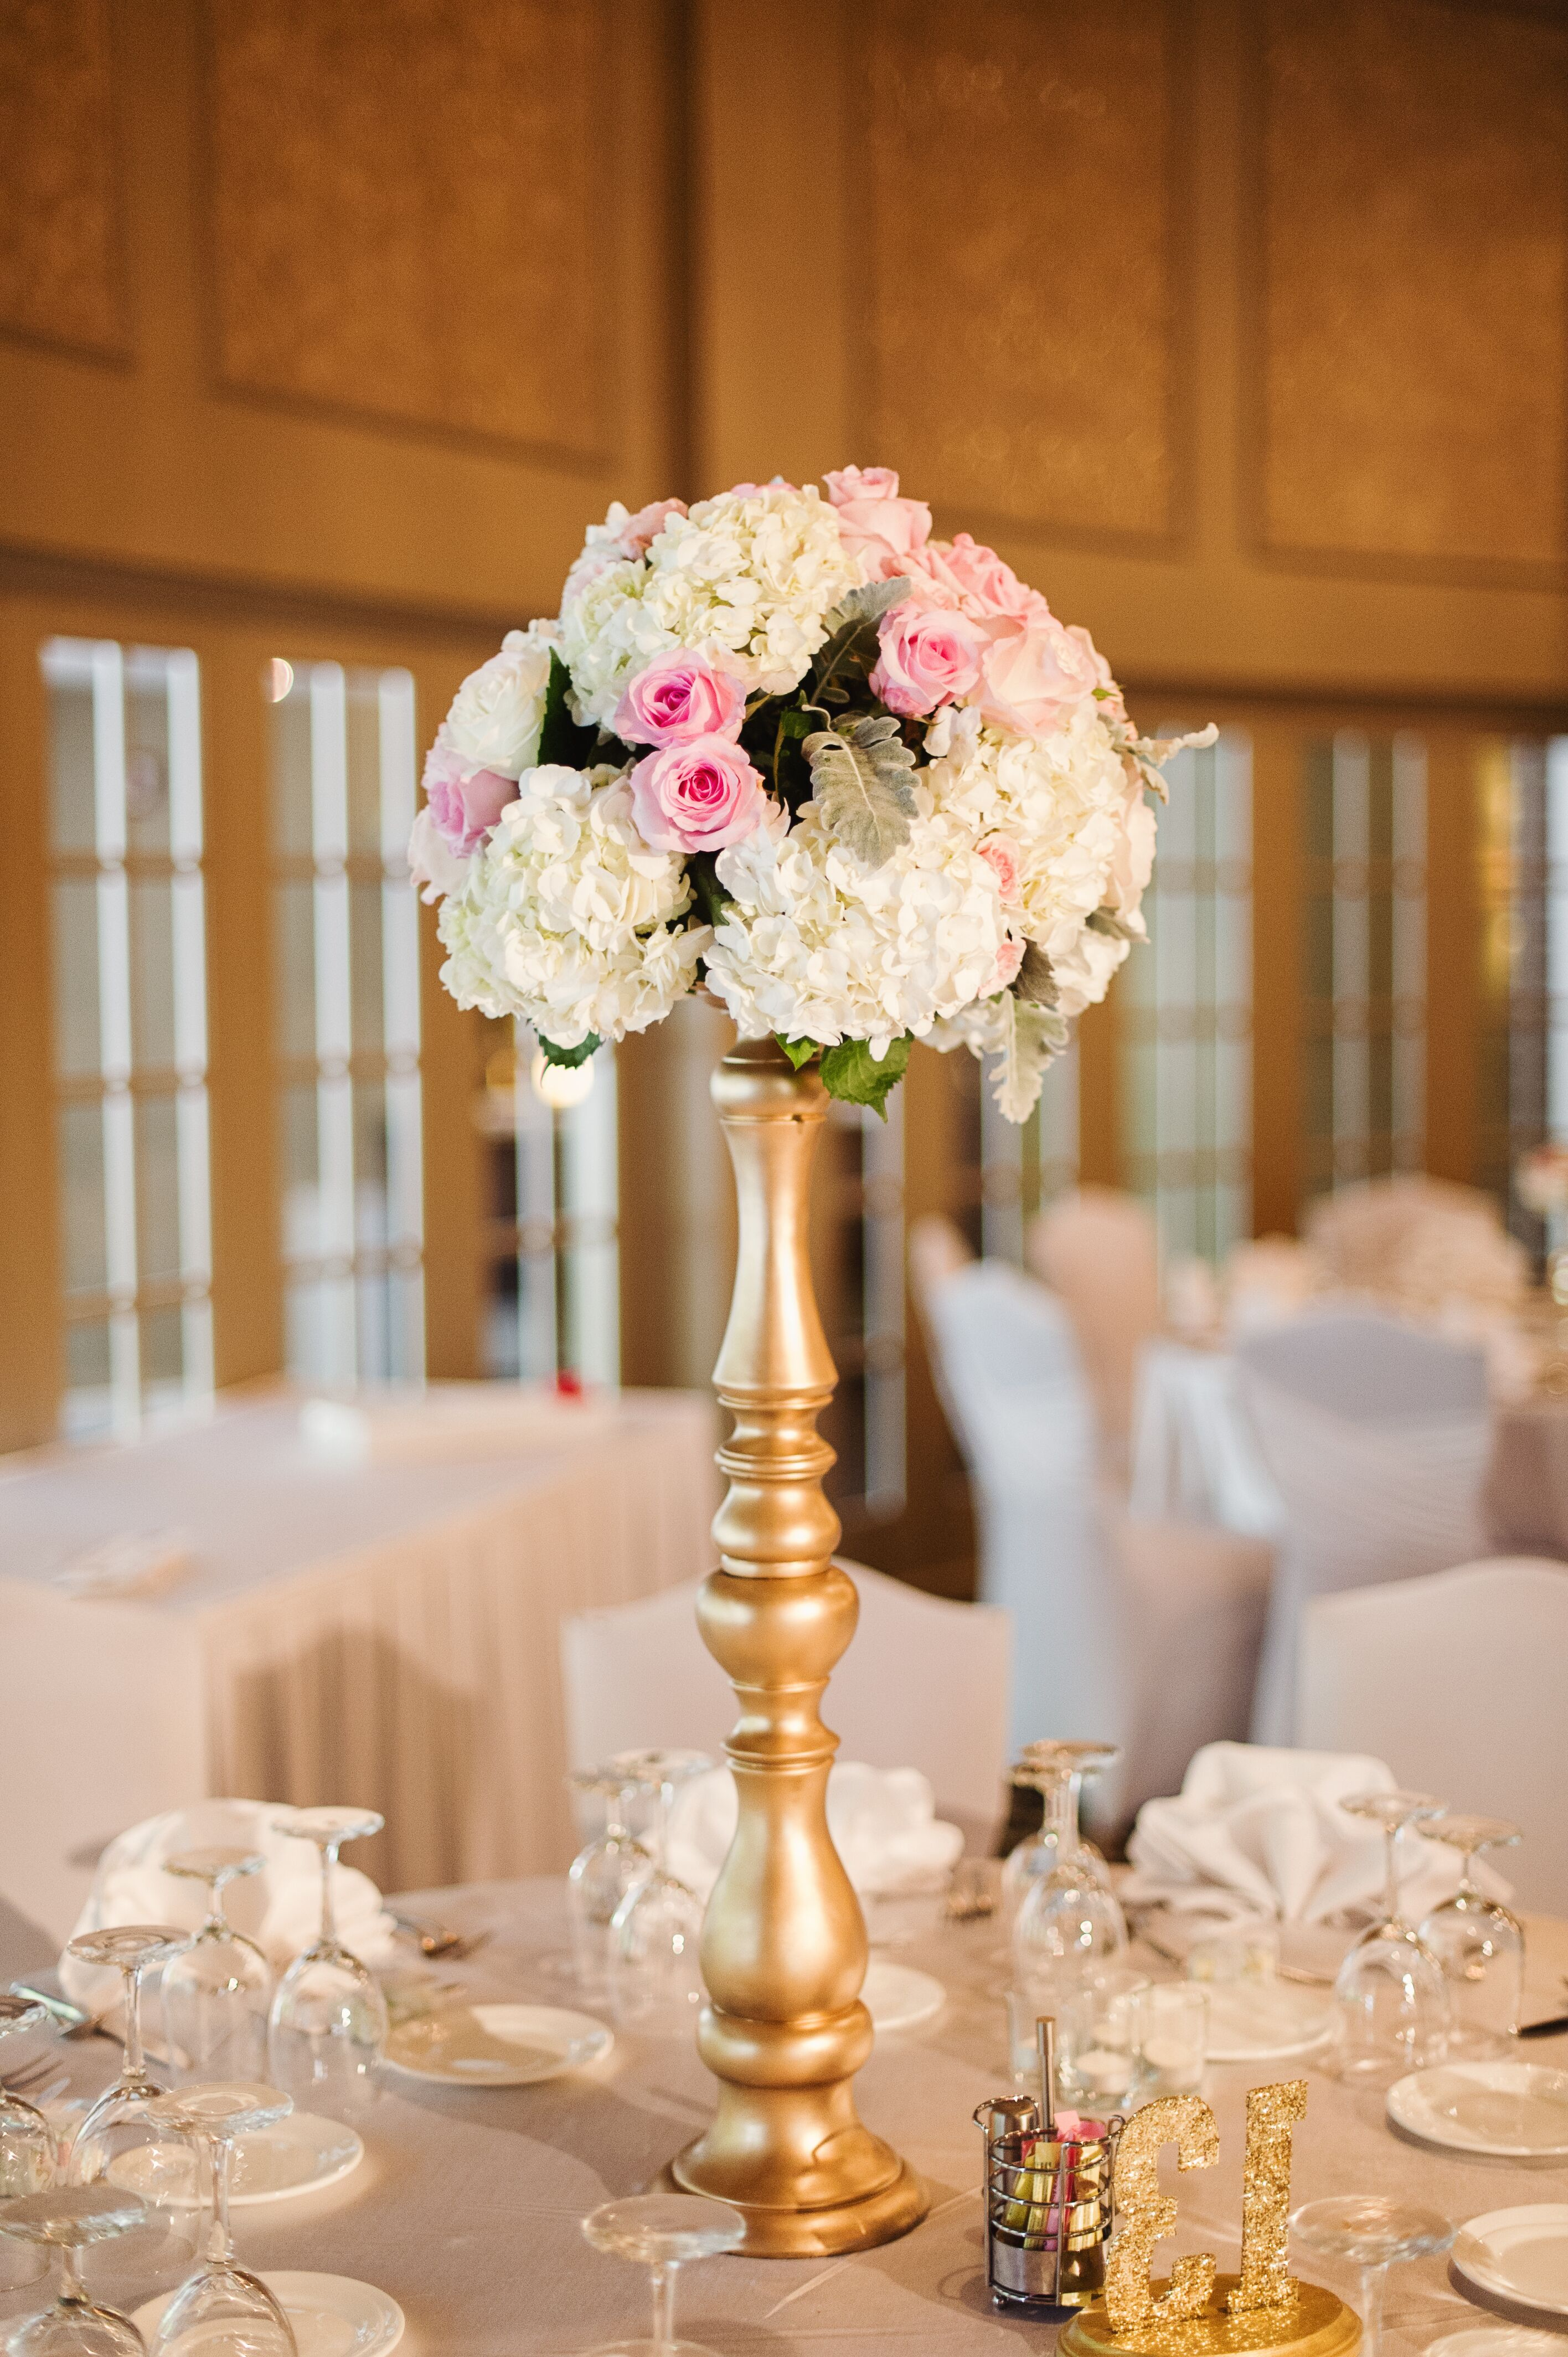 Tall White Hydrangea Blush Rose And Lamb S Ear Centerpieces